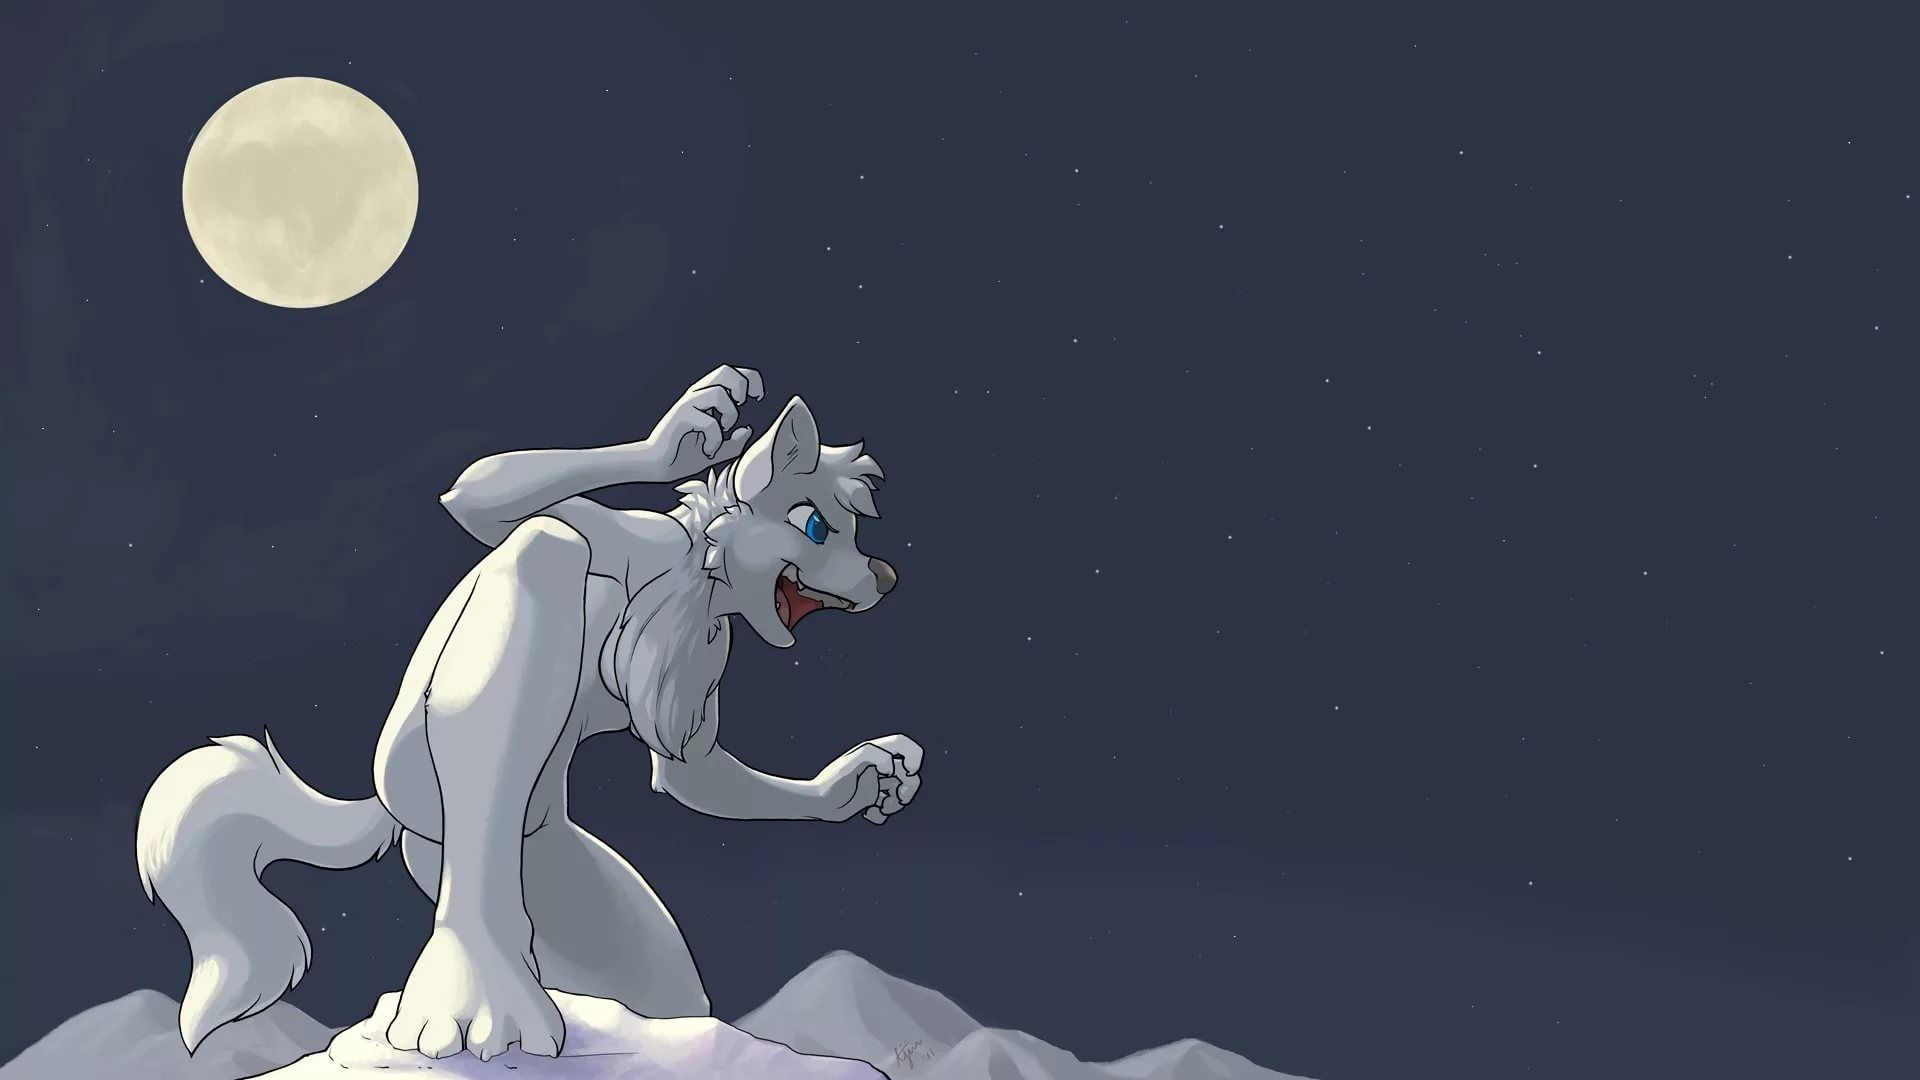 Furry Background hd wallpaper download